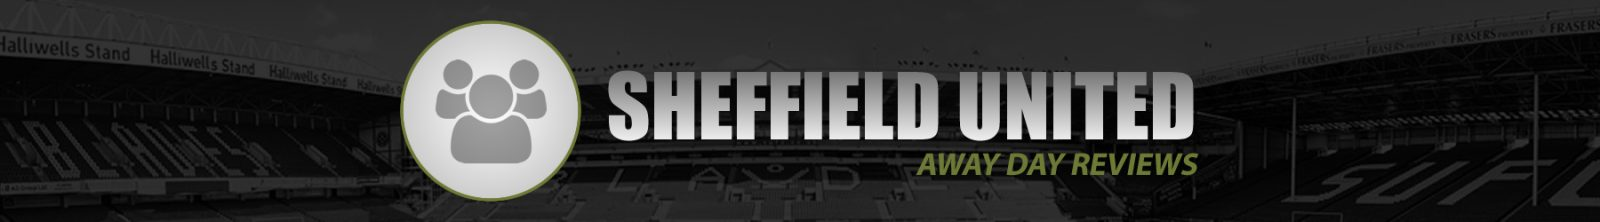 Review Sheffield United